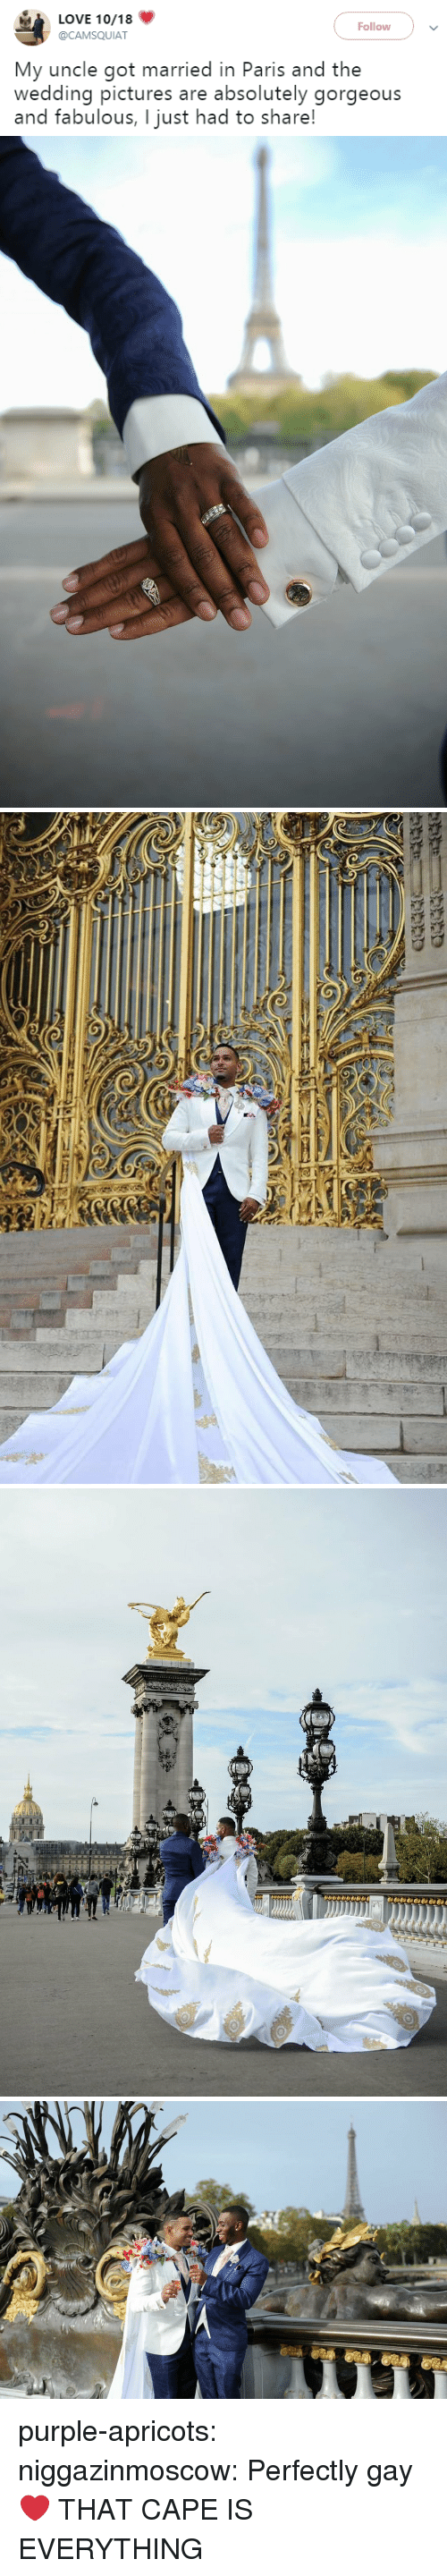 Love, Tumblr, and Blog: LOVE 10/18  Follow  @CAMSQUIAT  My uncle got married in Paris and the  wedding pictures are absolutely gorgeous  and fabulous, I just had to share! purple-apricots:  niggazinmoscow: Perfectly gay❤️  THAT CAPE IS EVERYTHING